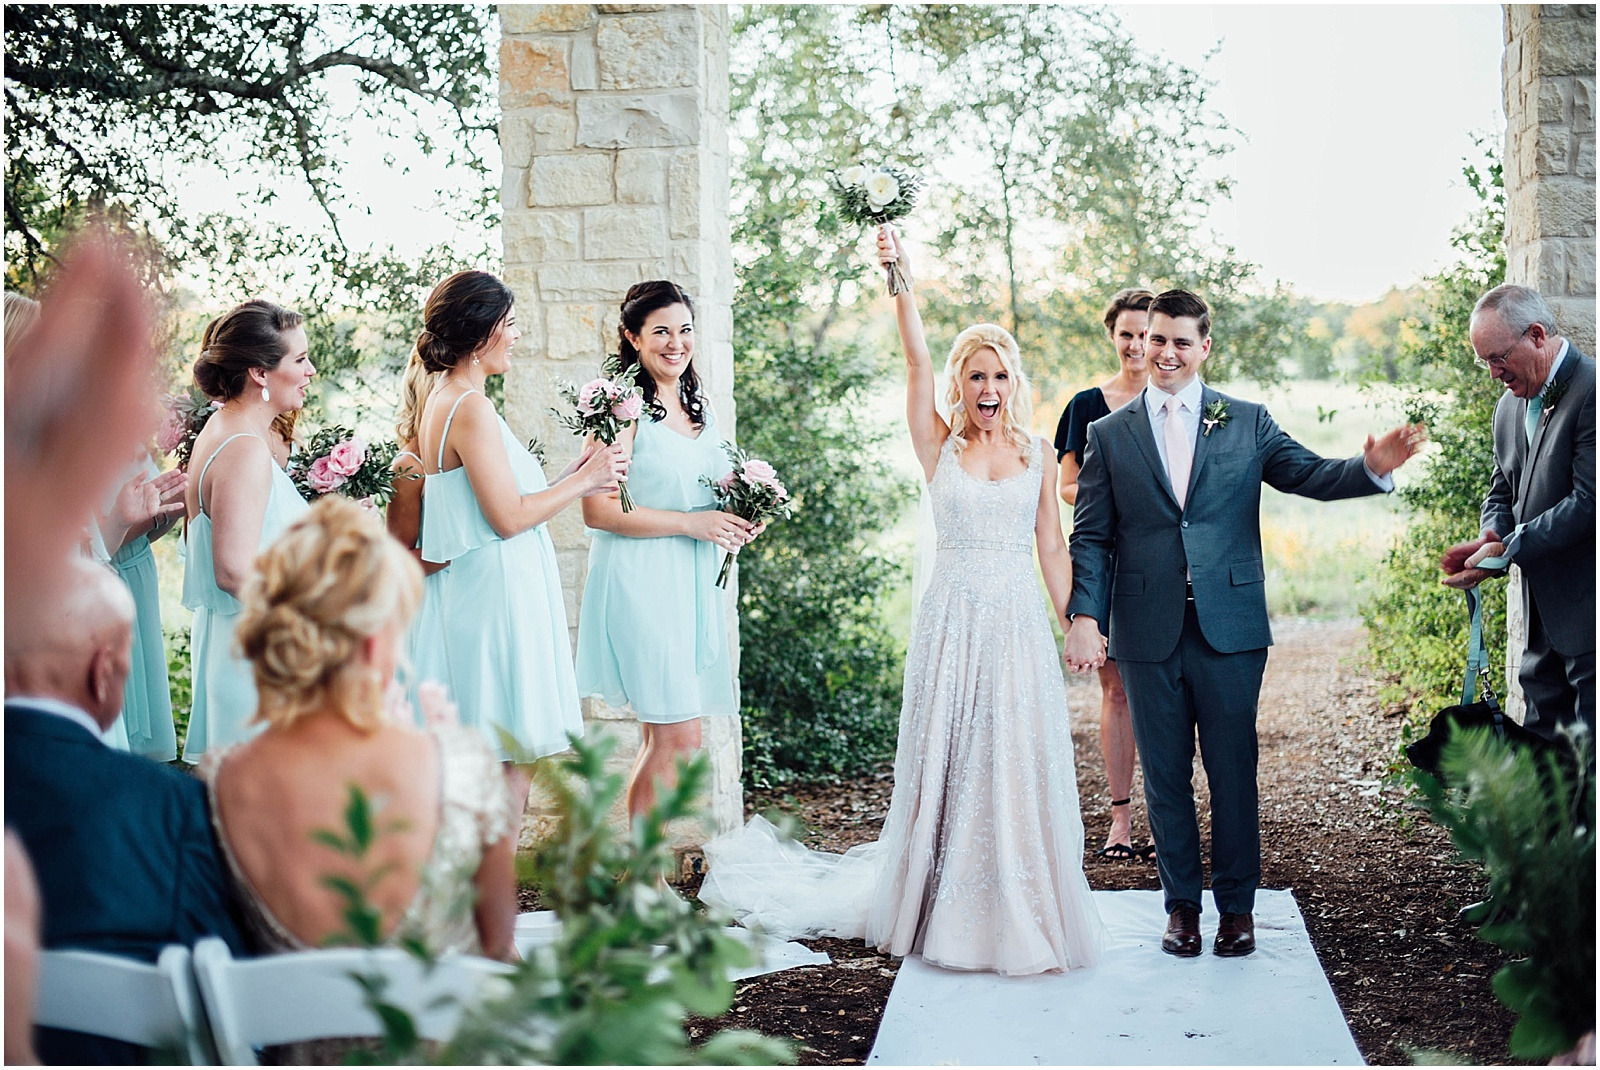 Just Married at Lady Bird Johnson Wildflower Center Austin Texas Wedding